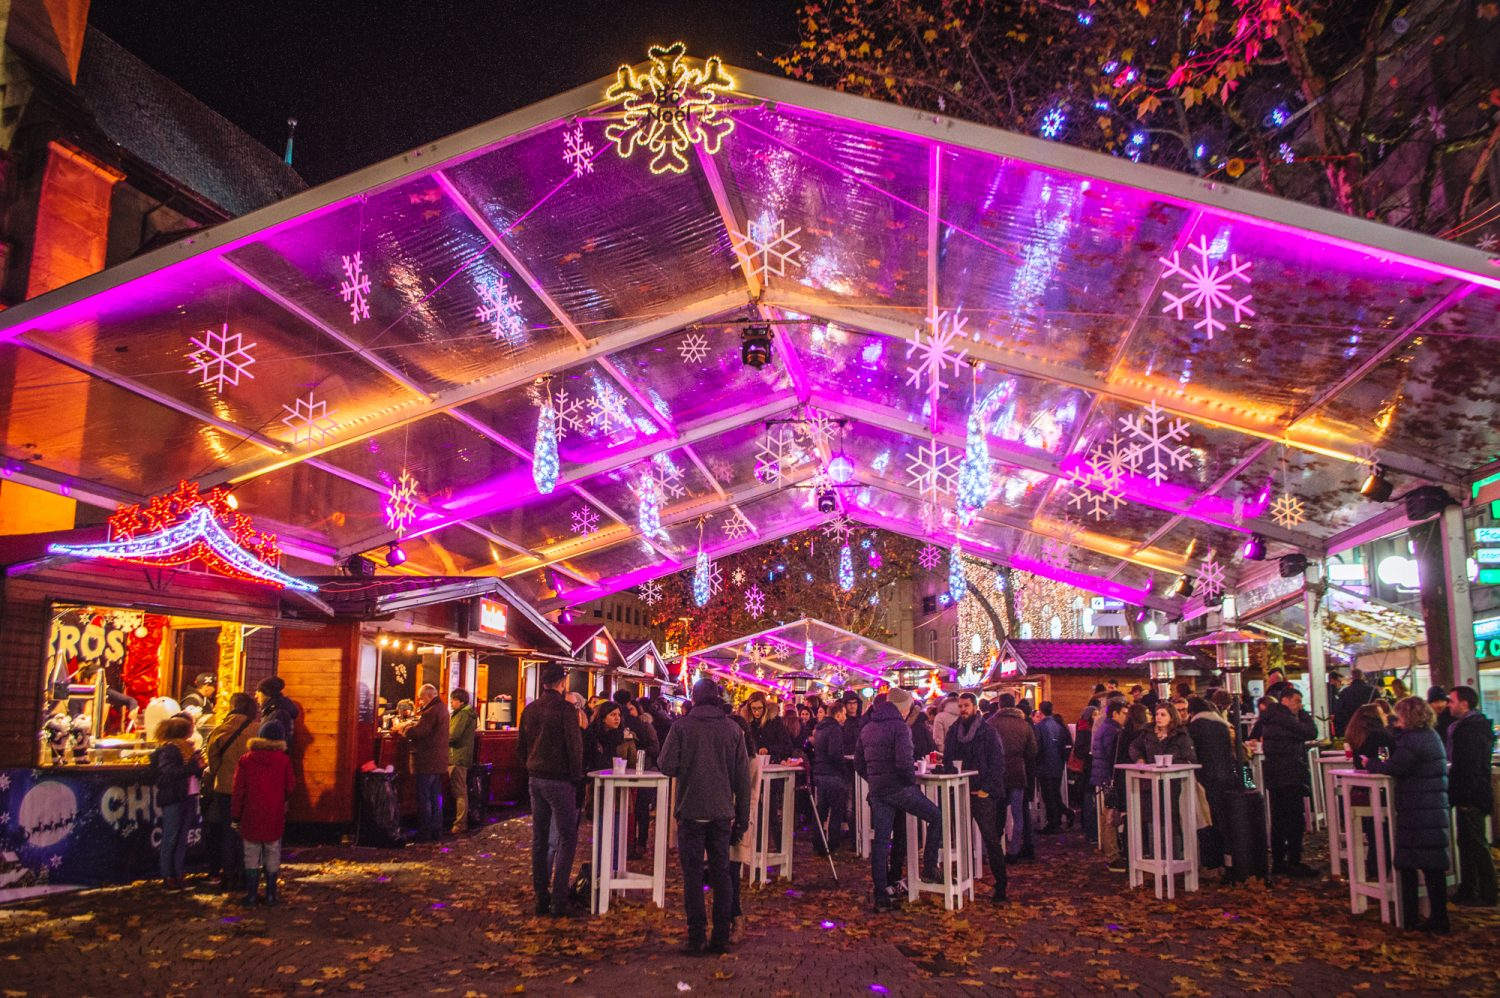 The BEST Christmas markets in Switzerland. If you're looking for a thorough and comprehensive Switzerland Christmas guide, this is it! The ultimate Switzerland Christmas market bucket list. #ChristmasMarkets #Switzerland #Europe #Christmas